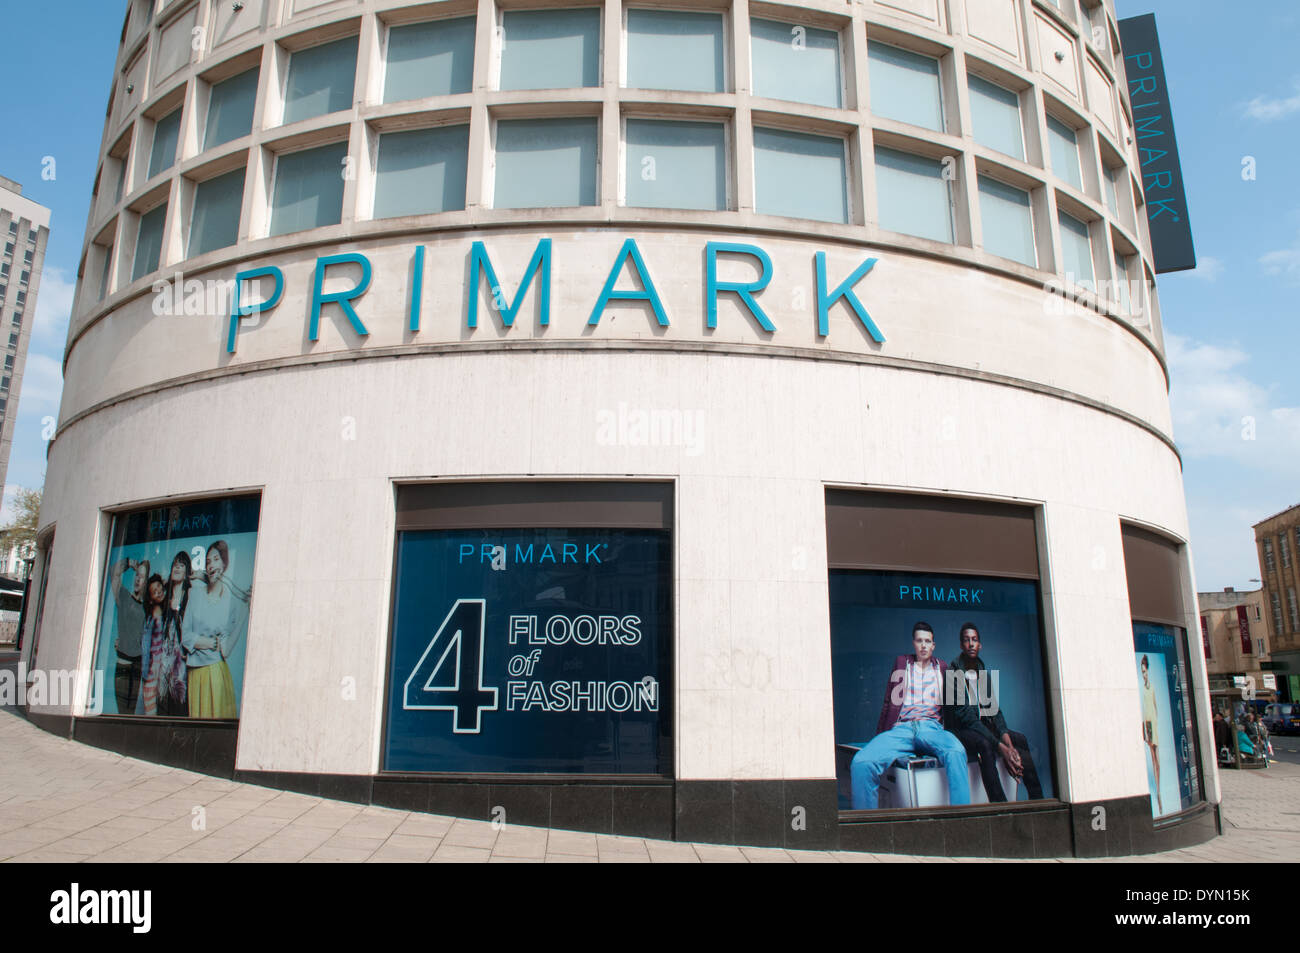 Massive towering Primark store with four floors of fashion in Bristol's Broadmead shopping centre - Stock Image